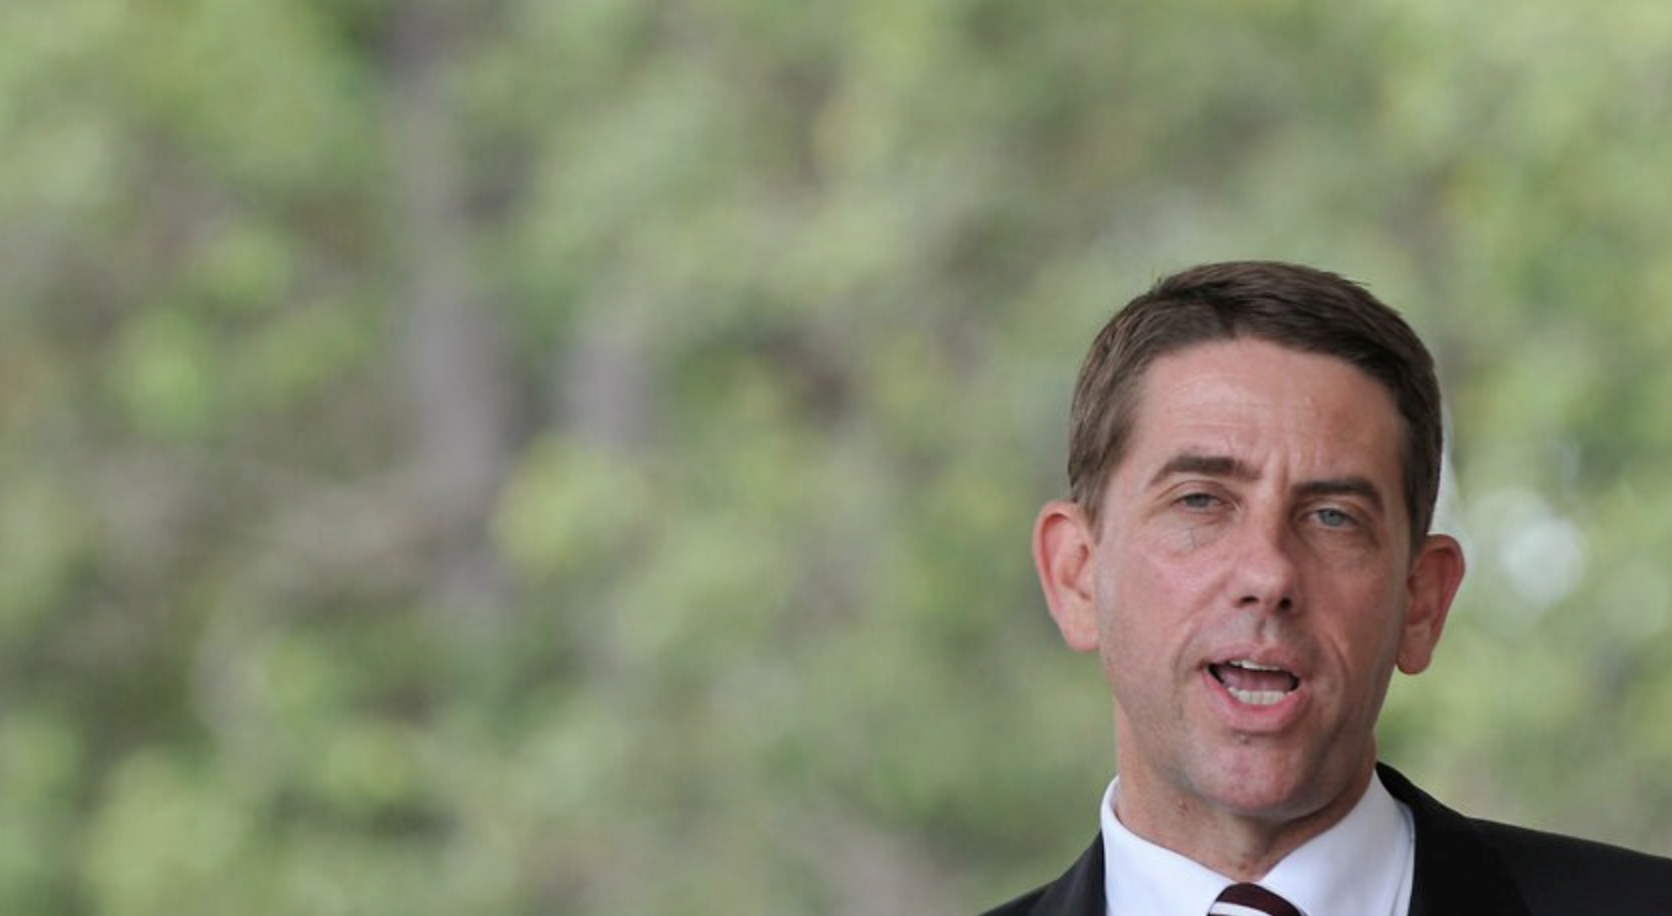 ▲Dick described the deal as one of the largest infrastructure agreements of its type in Australia.